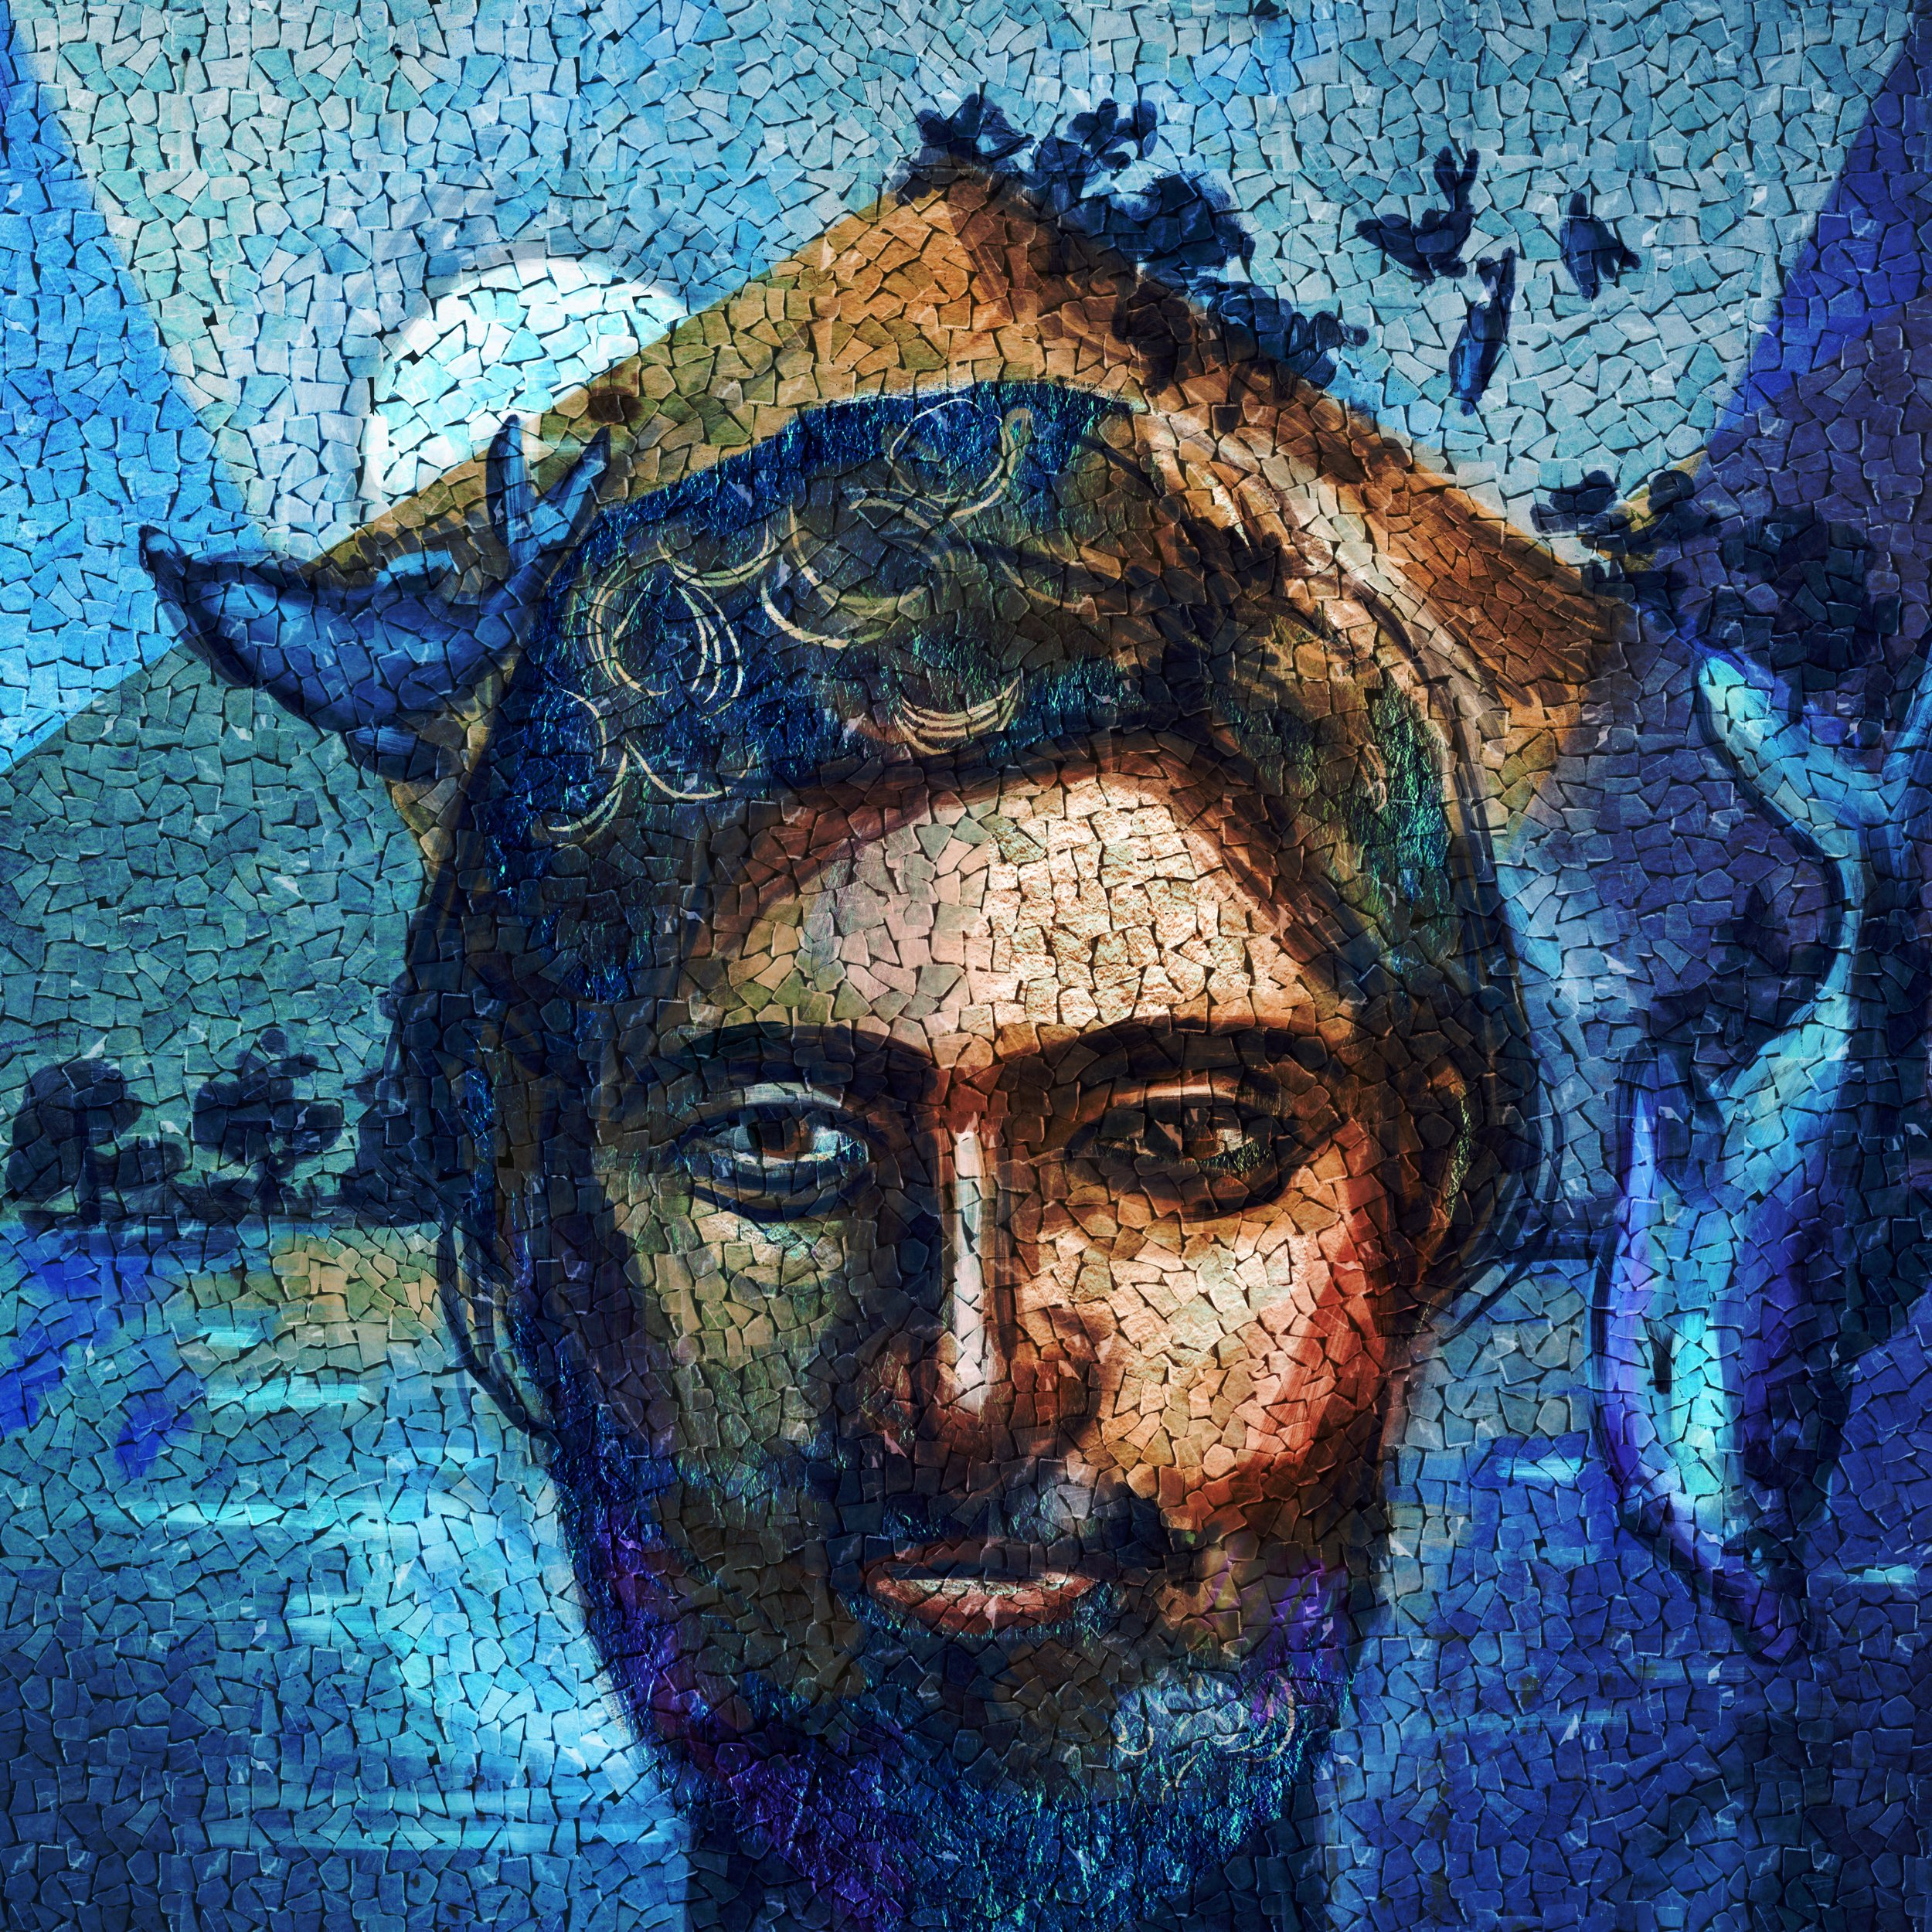 Yeshua the Dolphin Album Cover